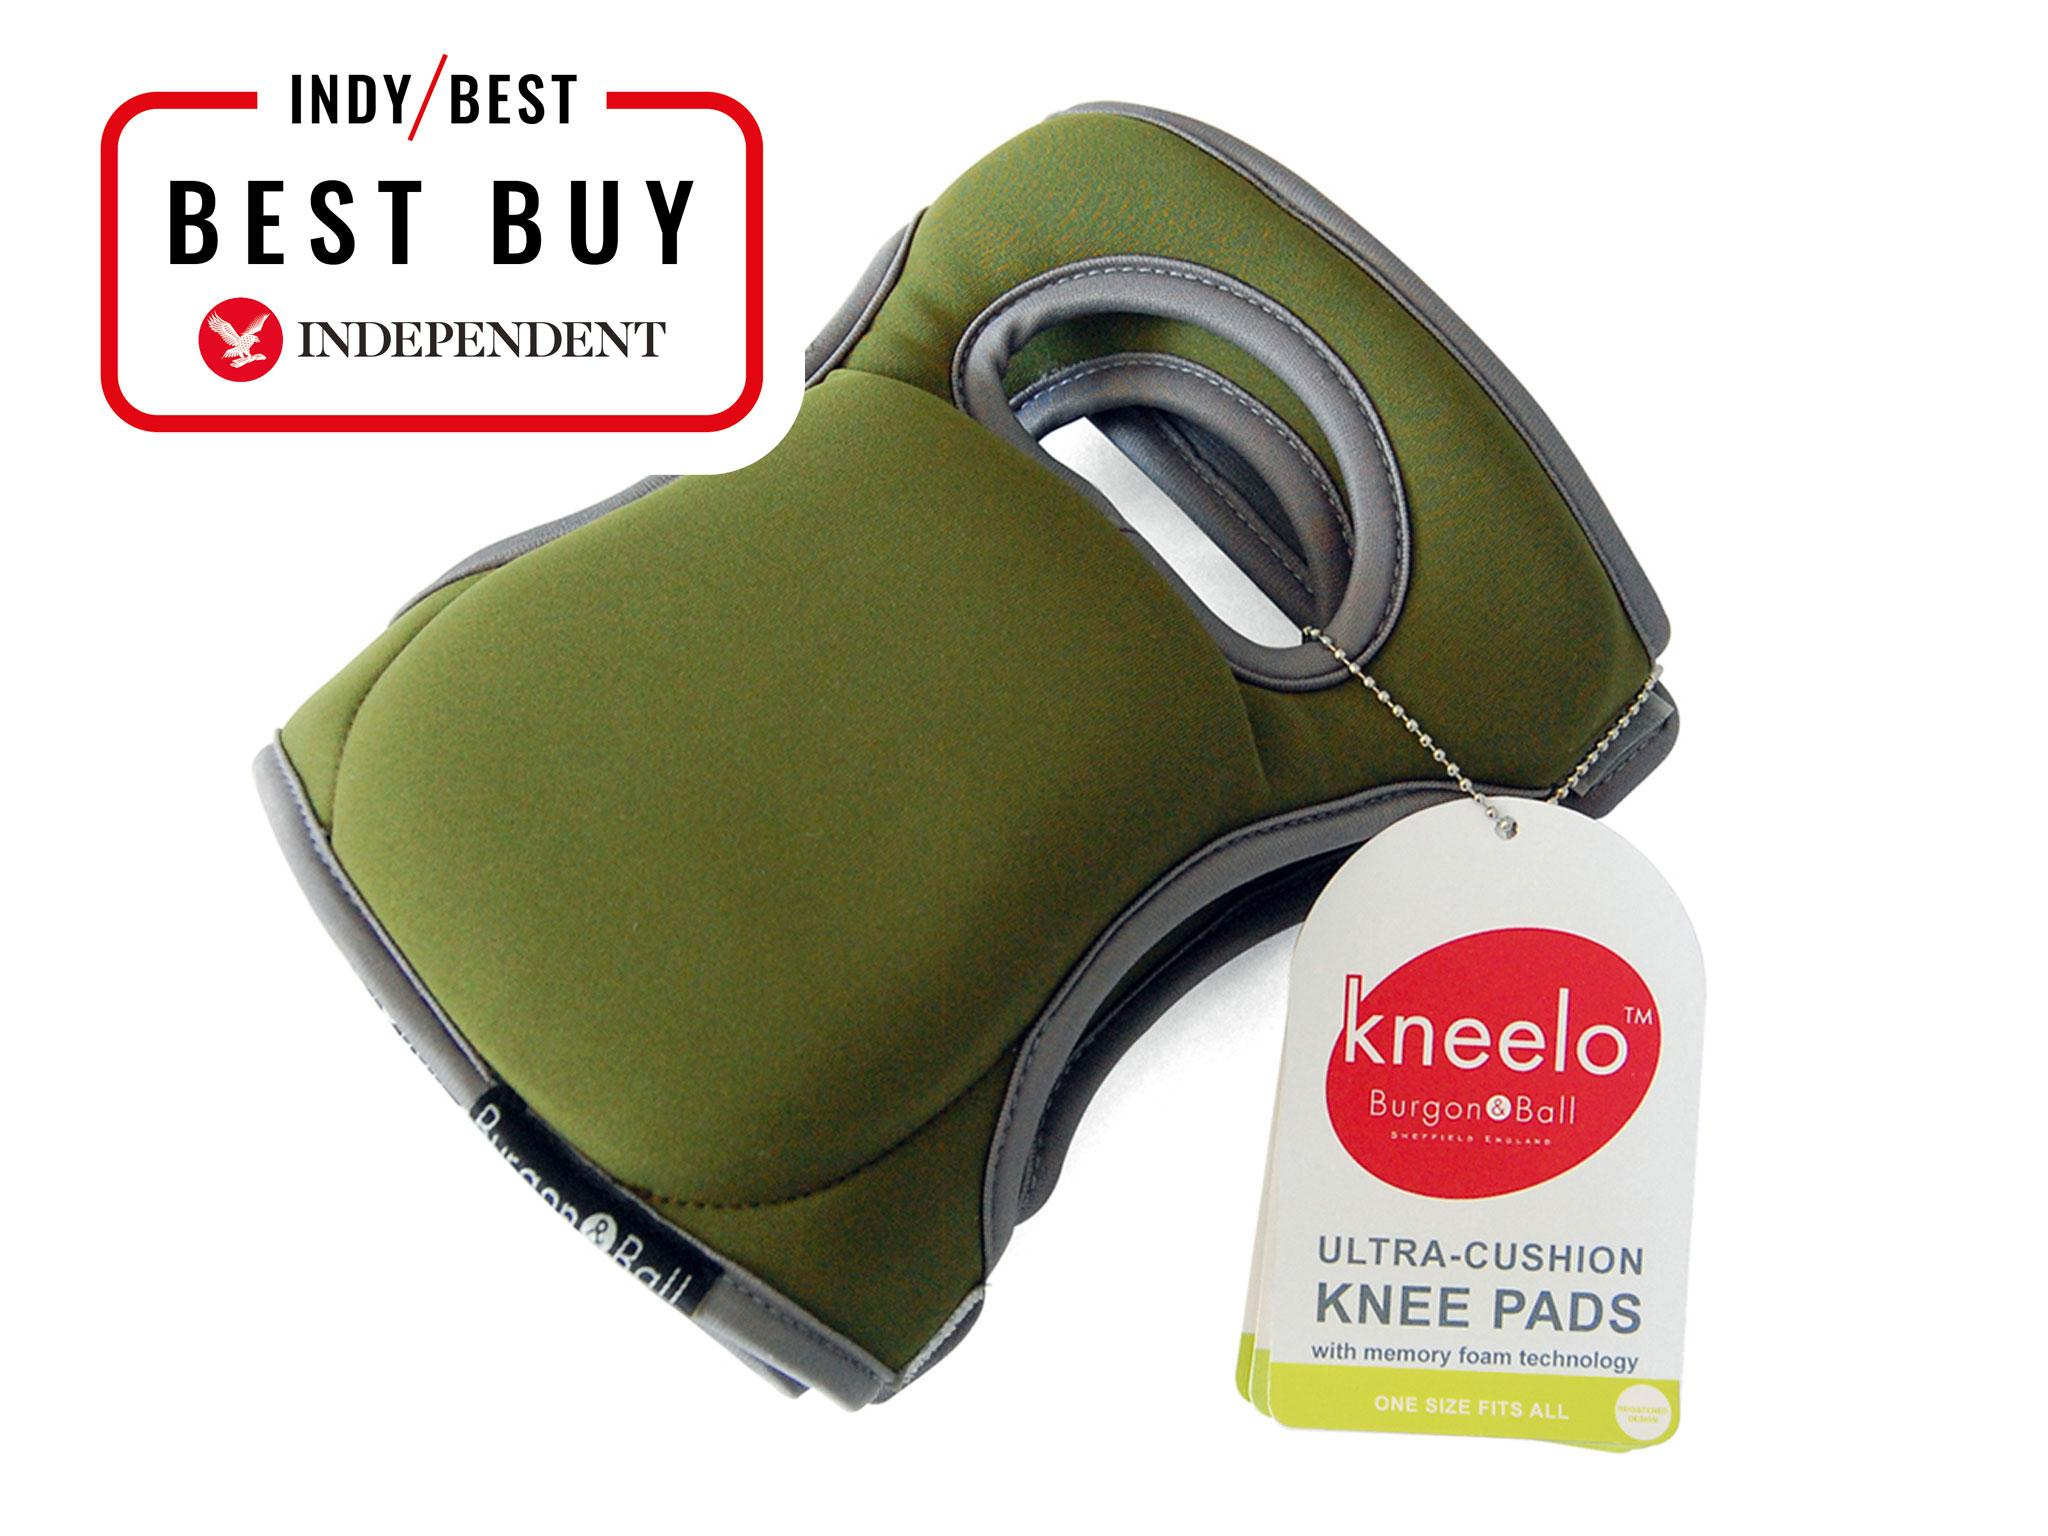 Burgon U0026 Ball Kneelo Knee Pads: From £11.47, Waitrose Garden